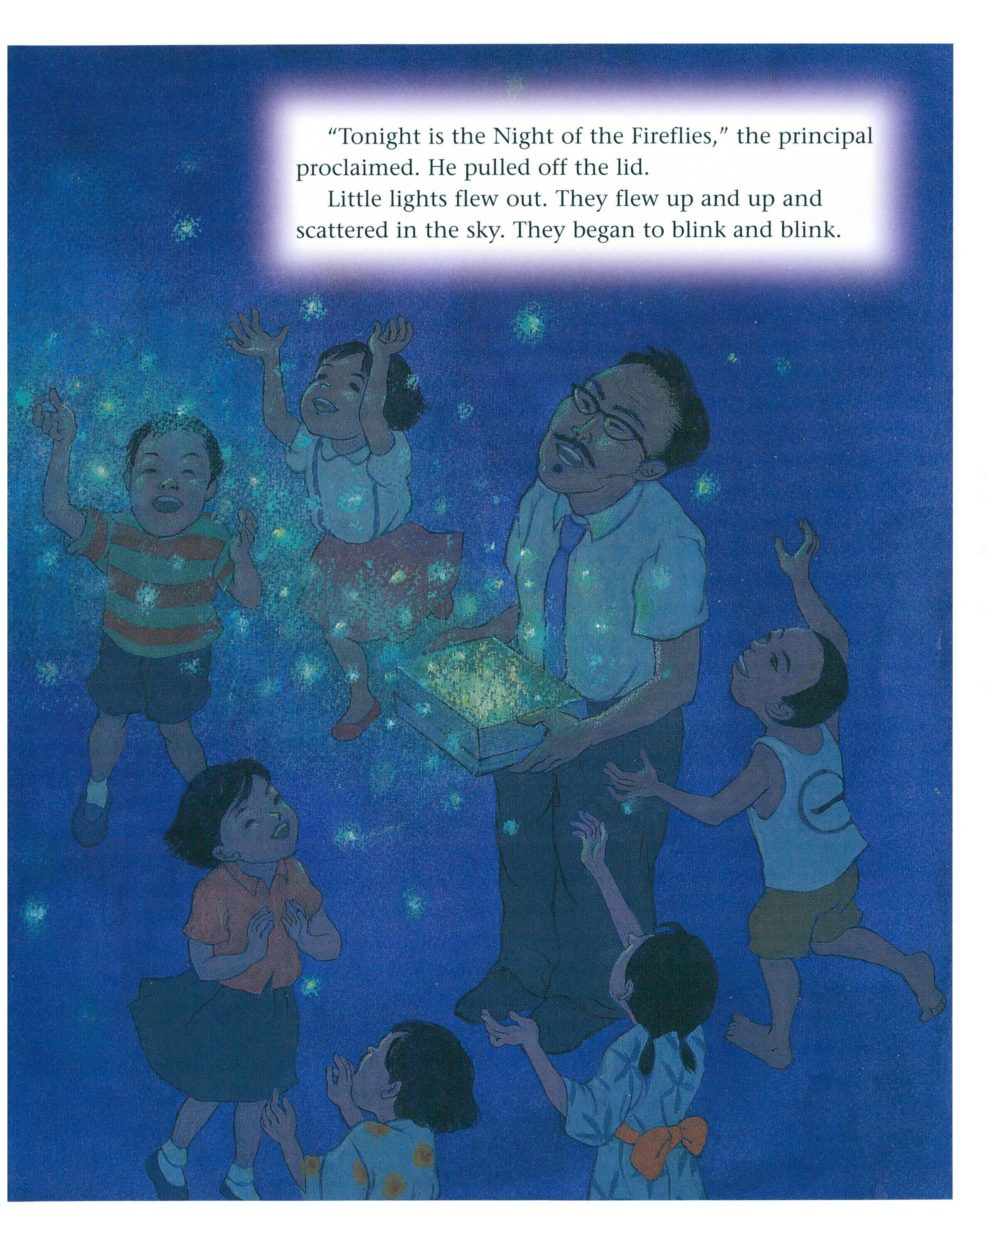 the-night-of-the-fireflies_page_15